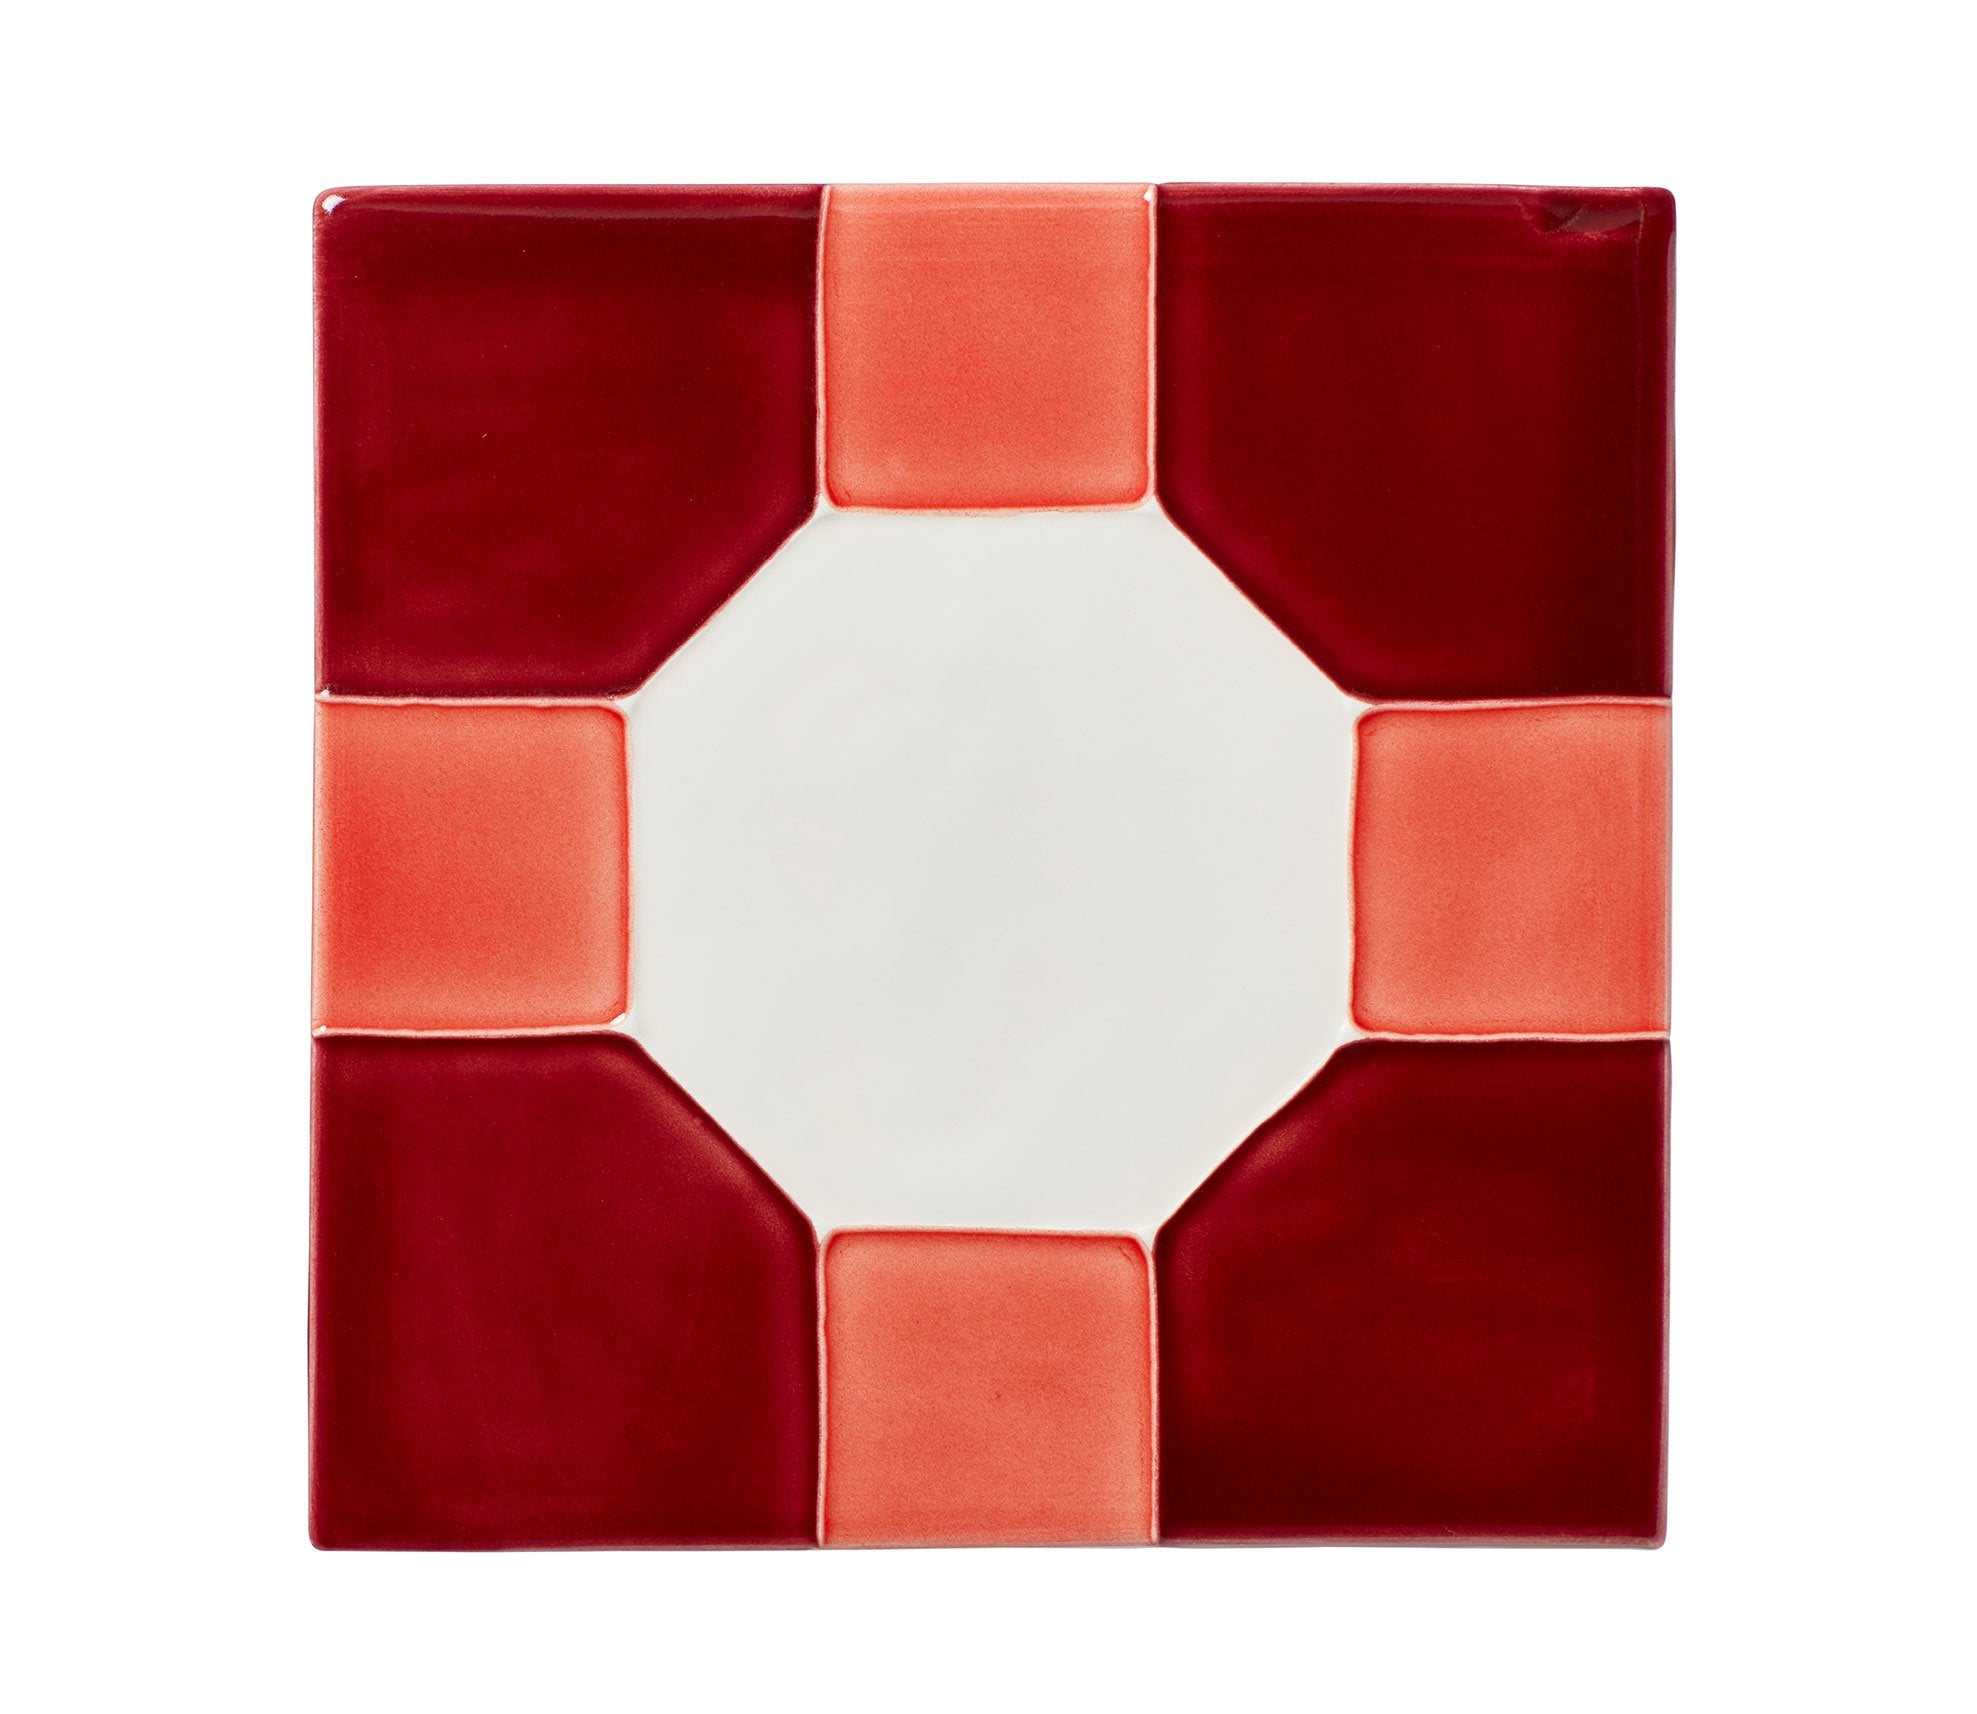 Hanley Tube Lined Decorative Tiles Product Image 21